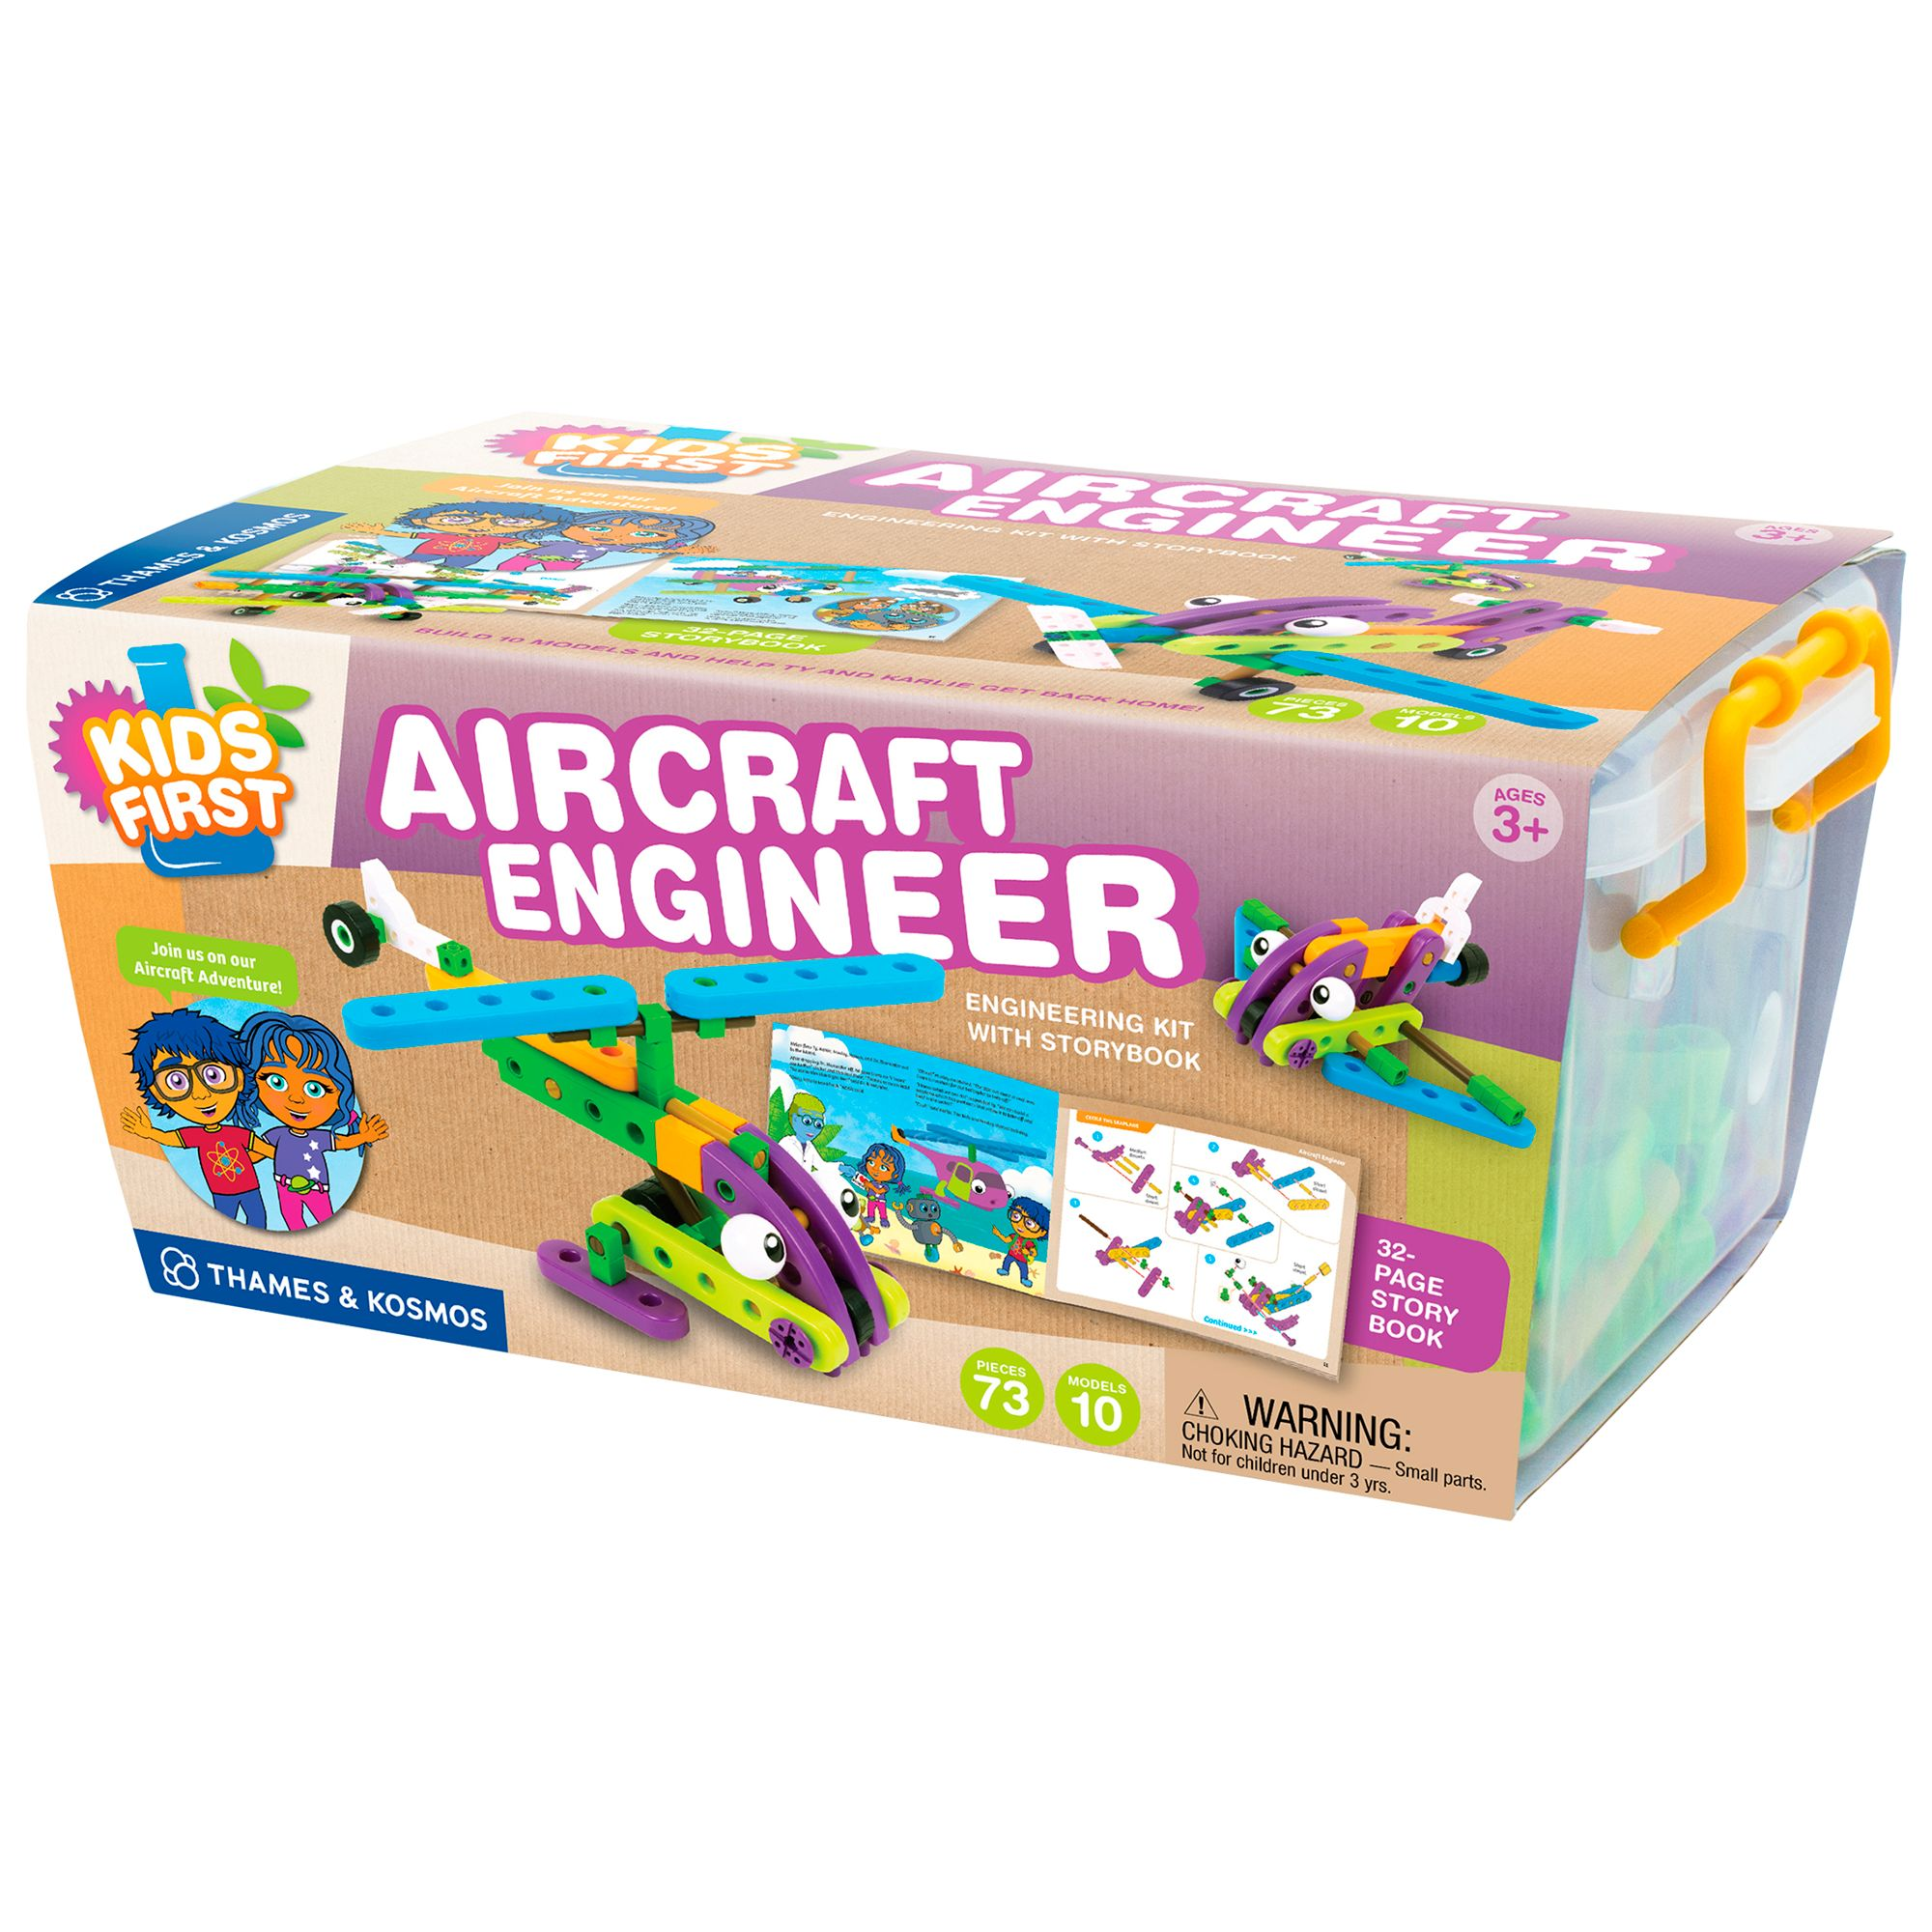 Thames & Kosmos Thames & Kosmos Kids' First Aircraft Engineer Kit With Storybook